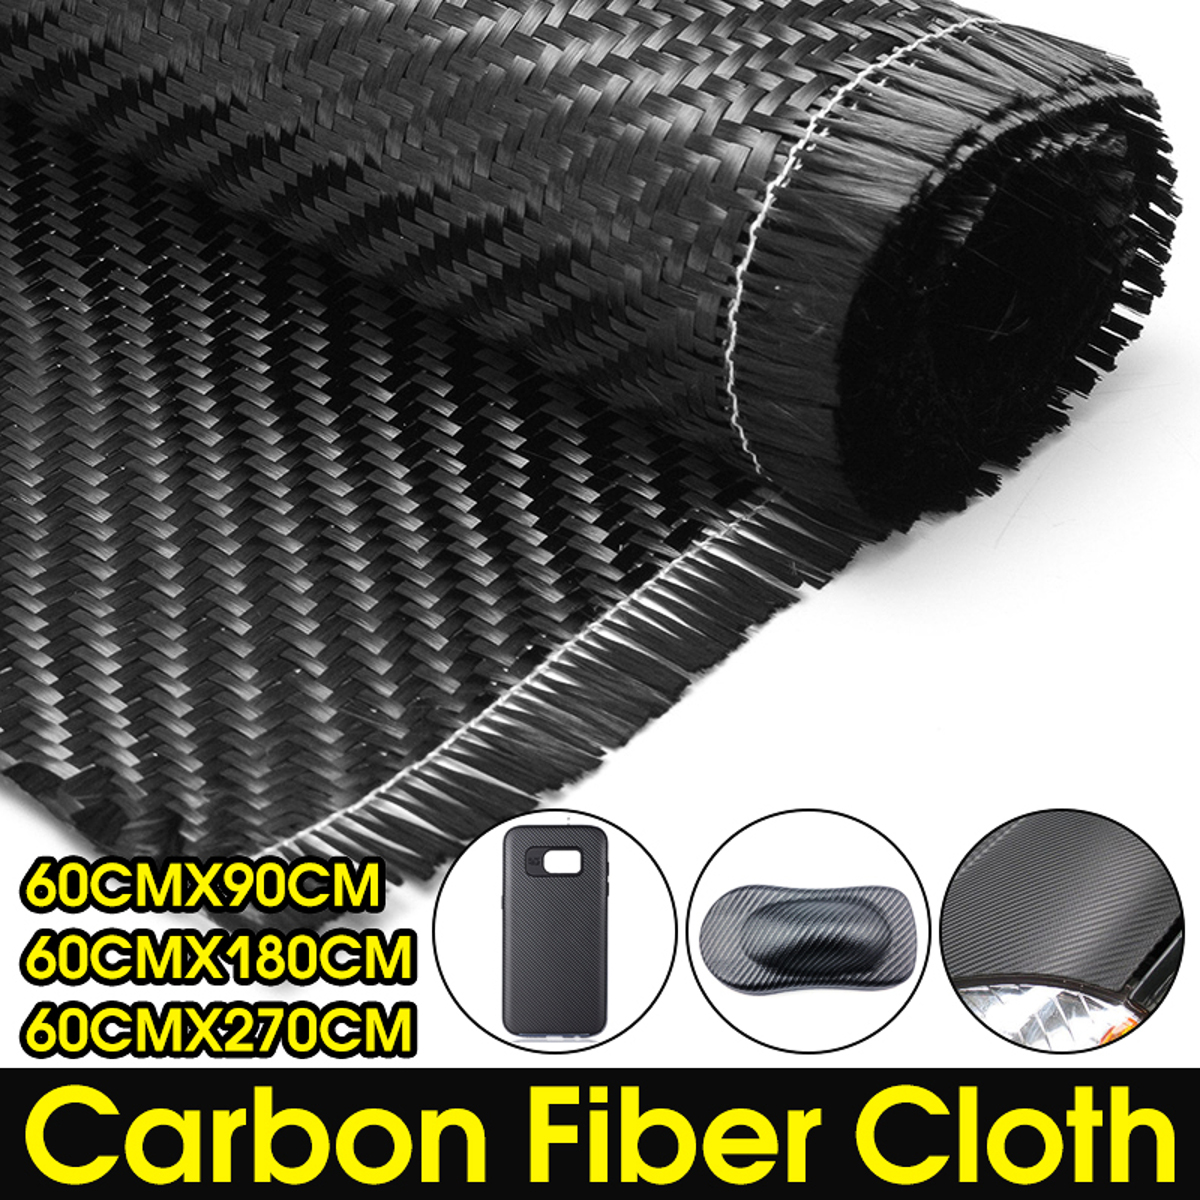 1pcs 3K 2/2 Twill Woven 0.111mm Thick 100[%] Real Carbon Fiber Fabric Carbon Yarn Weave Cloth For Car Parts And Airplane Models